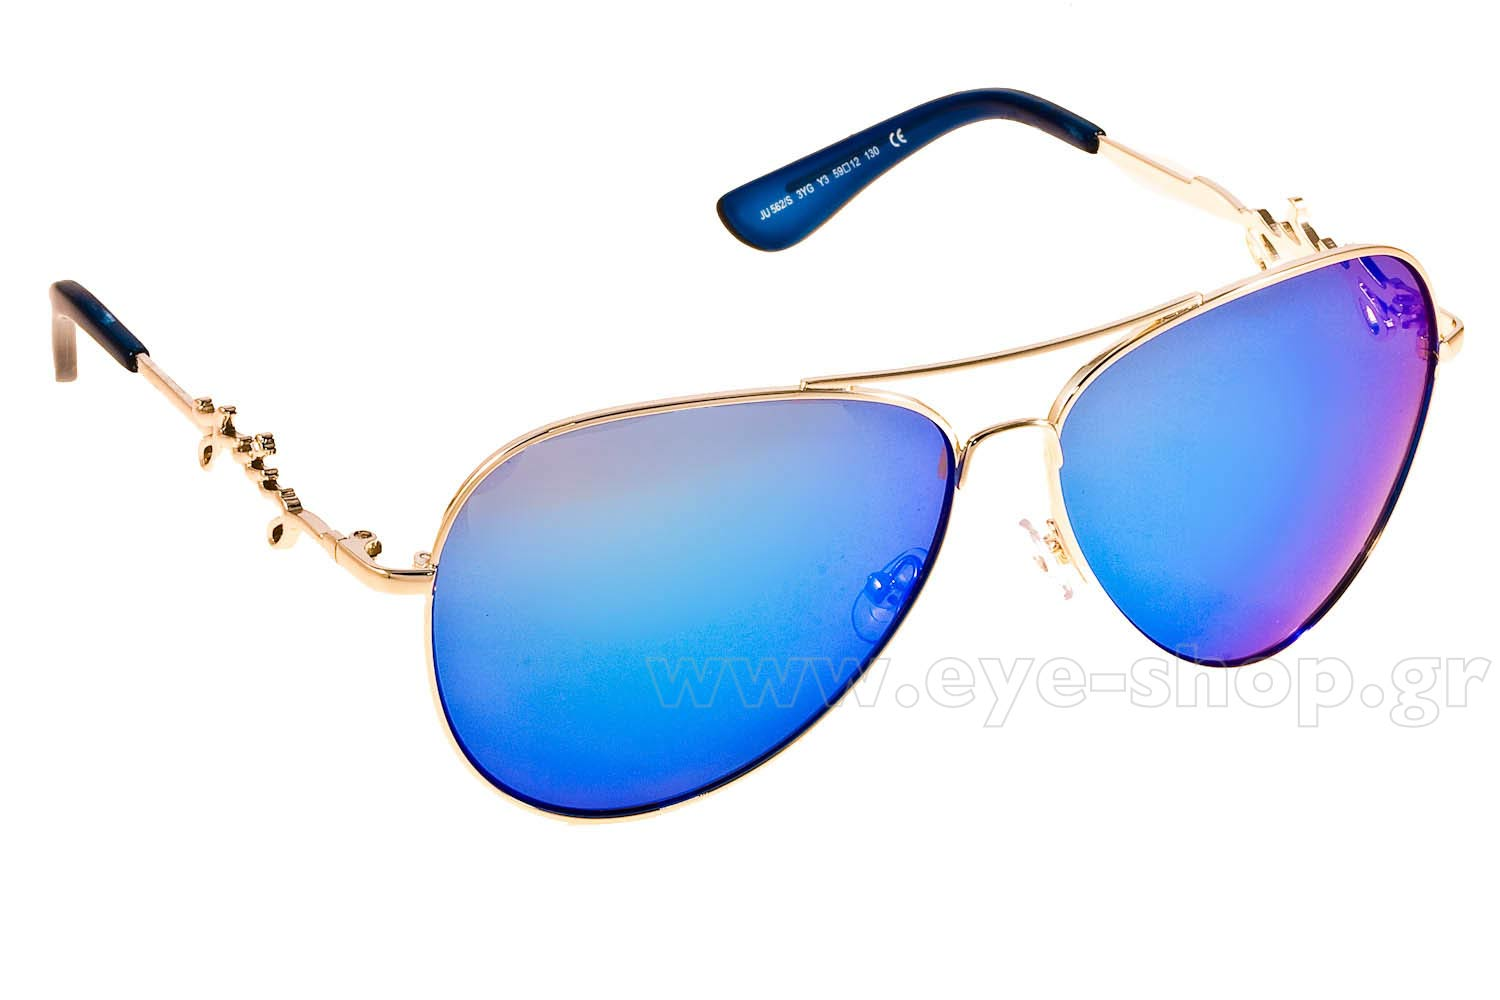 SUNGLASSES Juicy Couture JU562S 3YGY3 LGH GOLD BROWN BLUE SP c4478b94d0a